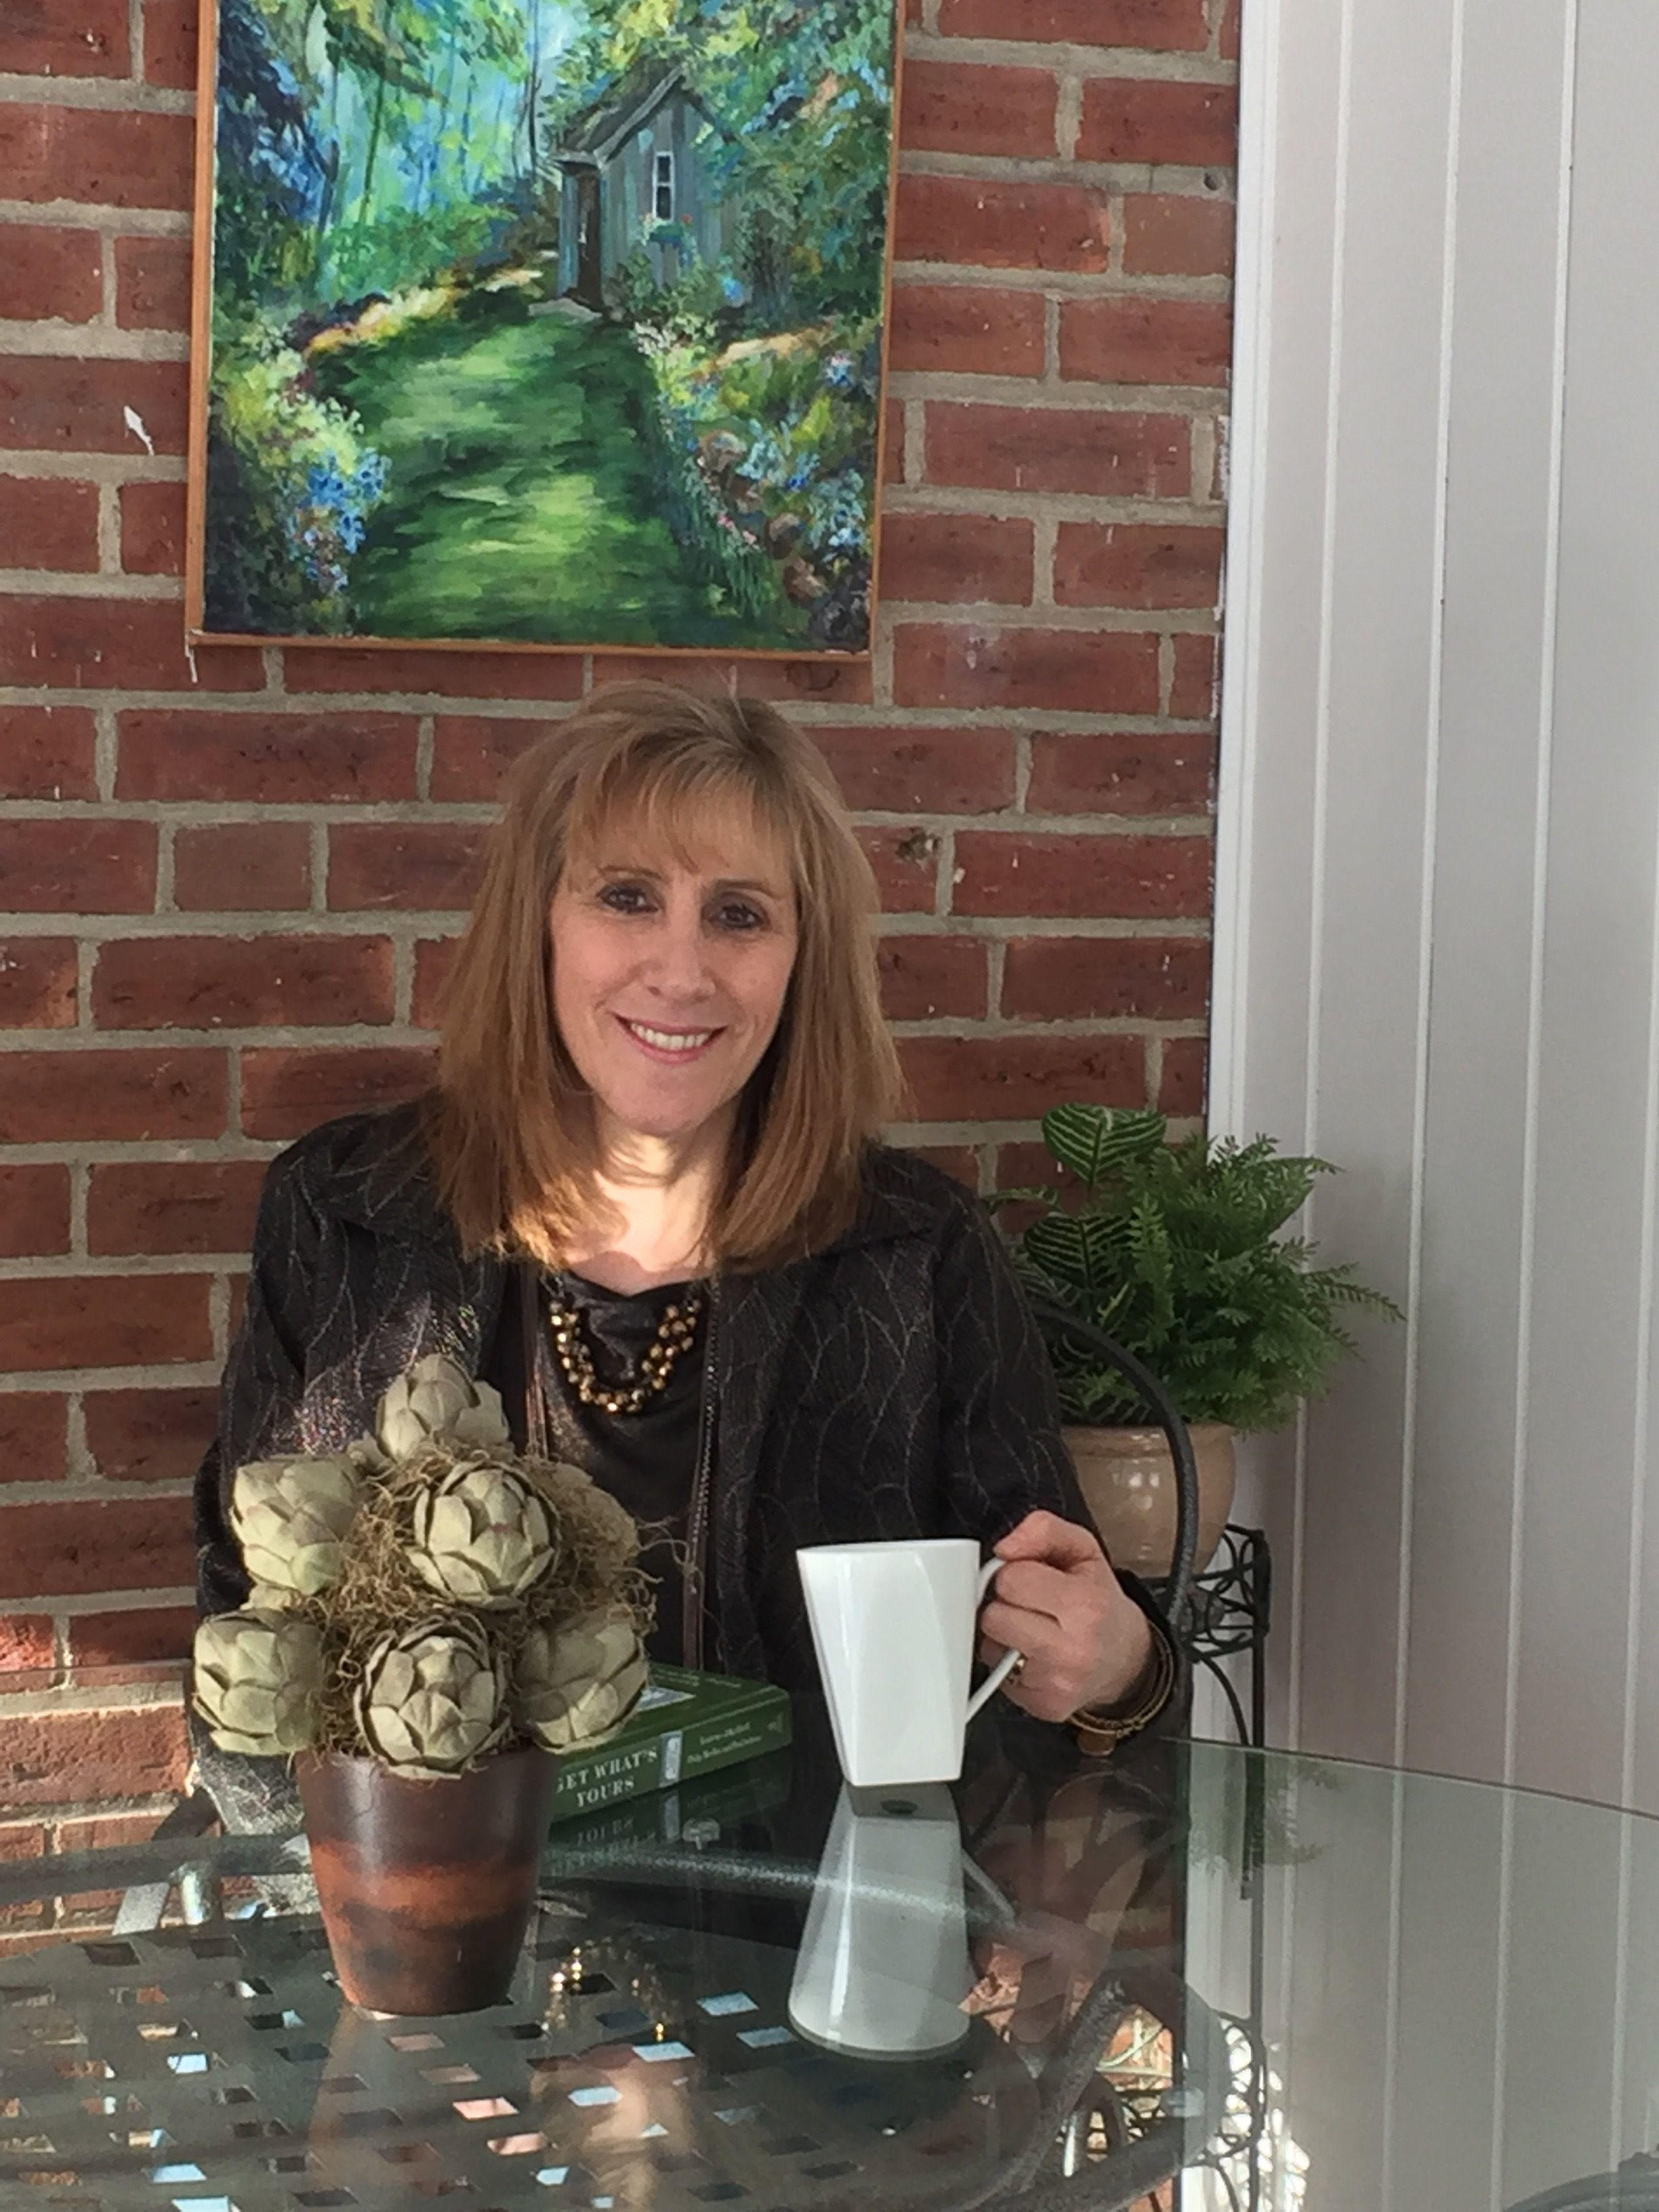 lock haven divorced singles Book lindsey place, lock haven on tripadvisor: see 9 traveler reviews, 7 candid photos, and great deals for lindsey place, ranked #3 of 6 b&bs / inns in lock haven and rated 5 of 5 at tripadvisor.